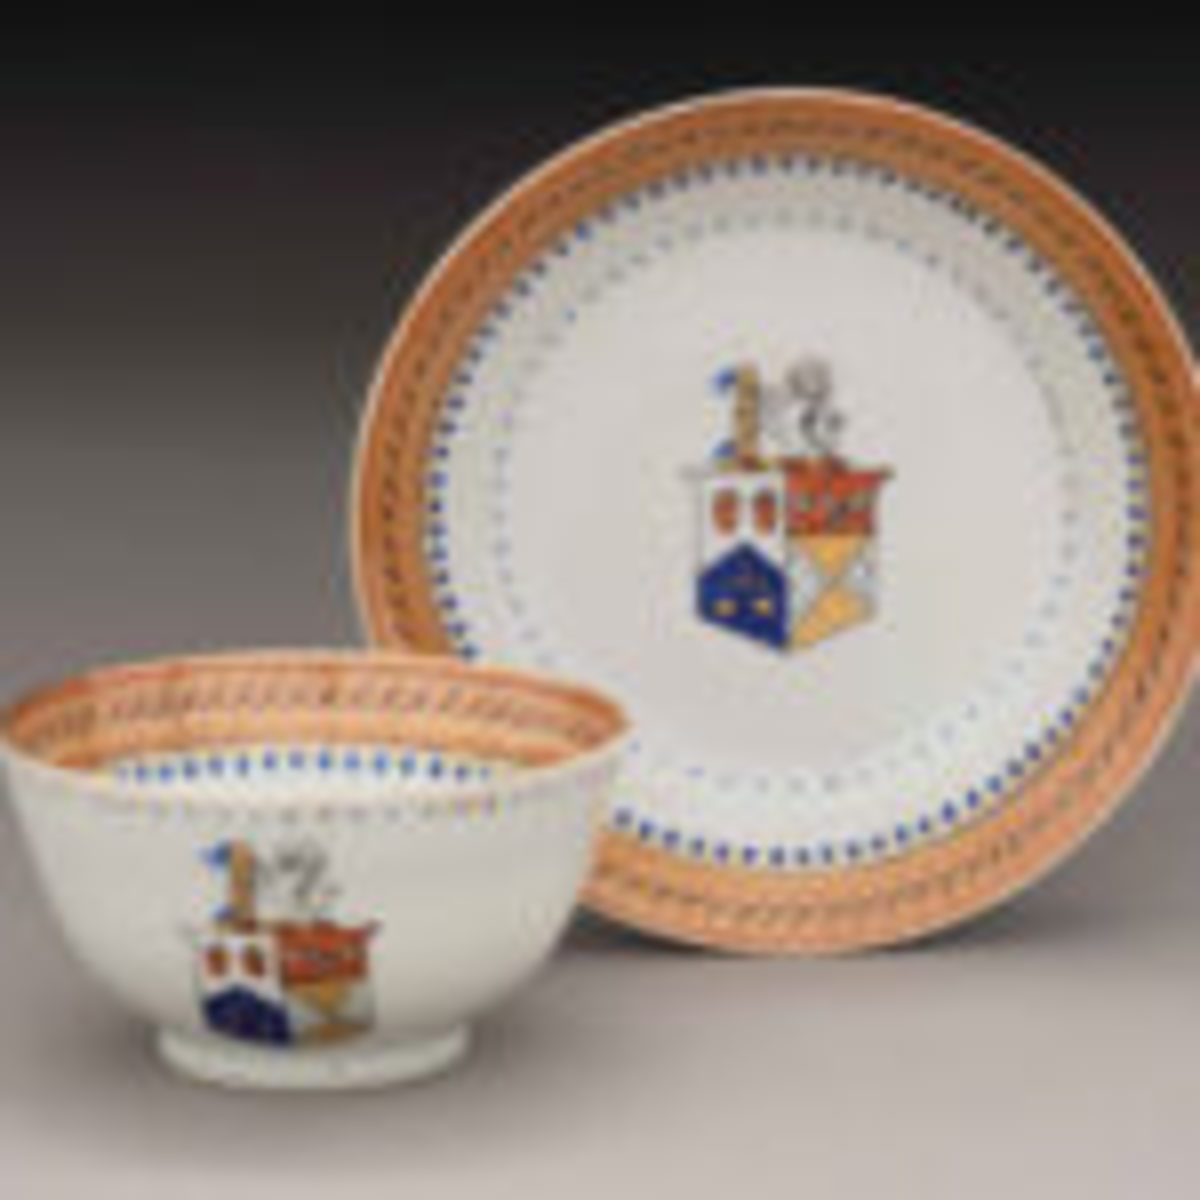 Cup and Saucer, Jingdezhen, China, circa 1805, hard-paste porcelain, Museum Purchase, The Buddy Taub Foundation, Dennis A. Roach and Jill Roach Directors, 2016-117, A&B